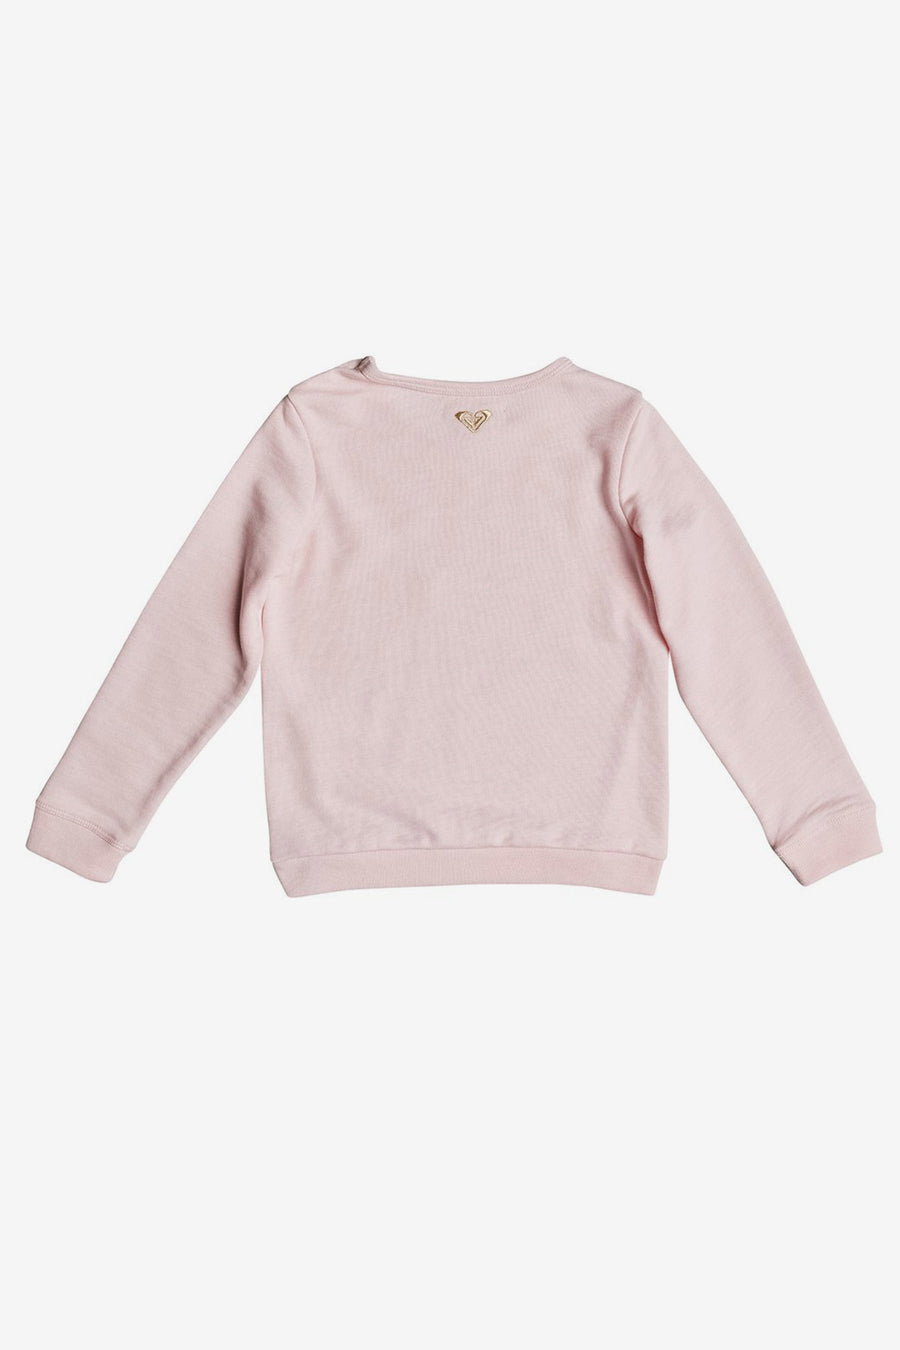 Roxy Palms Valley Llama Girls Sweatshirt